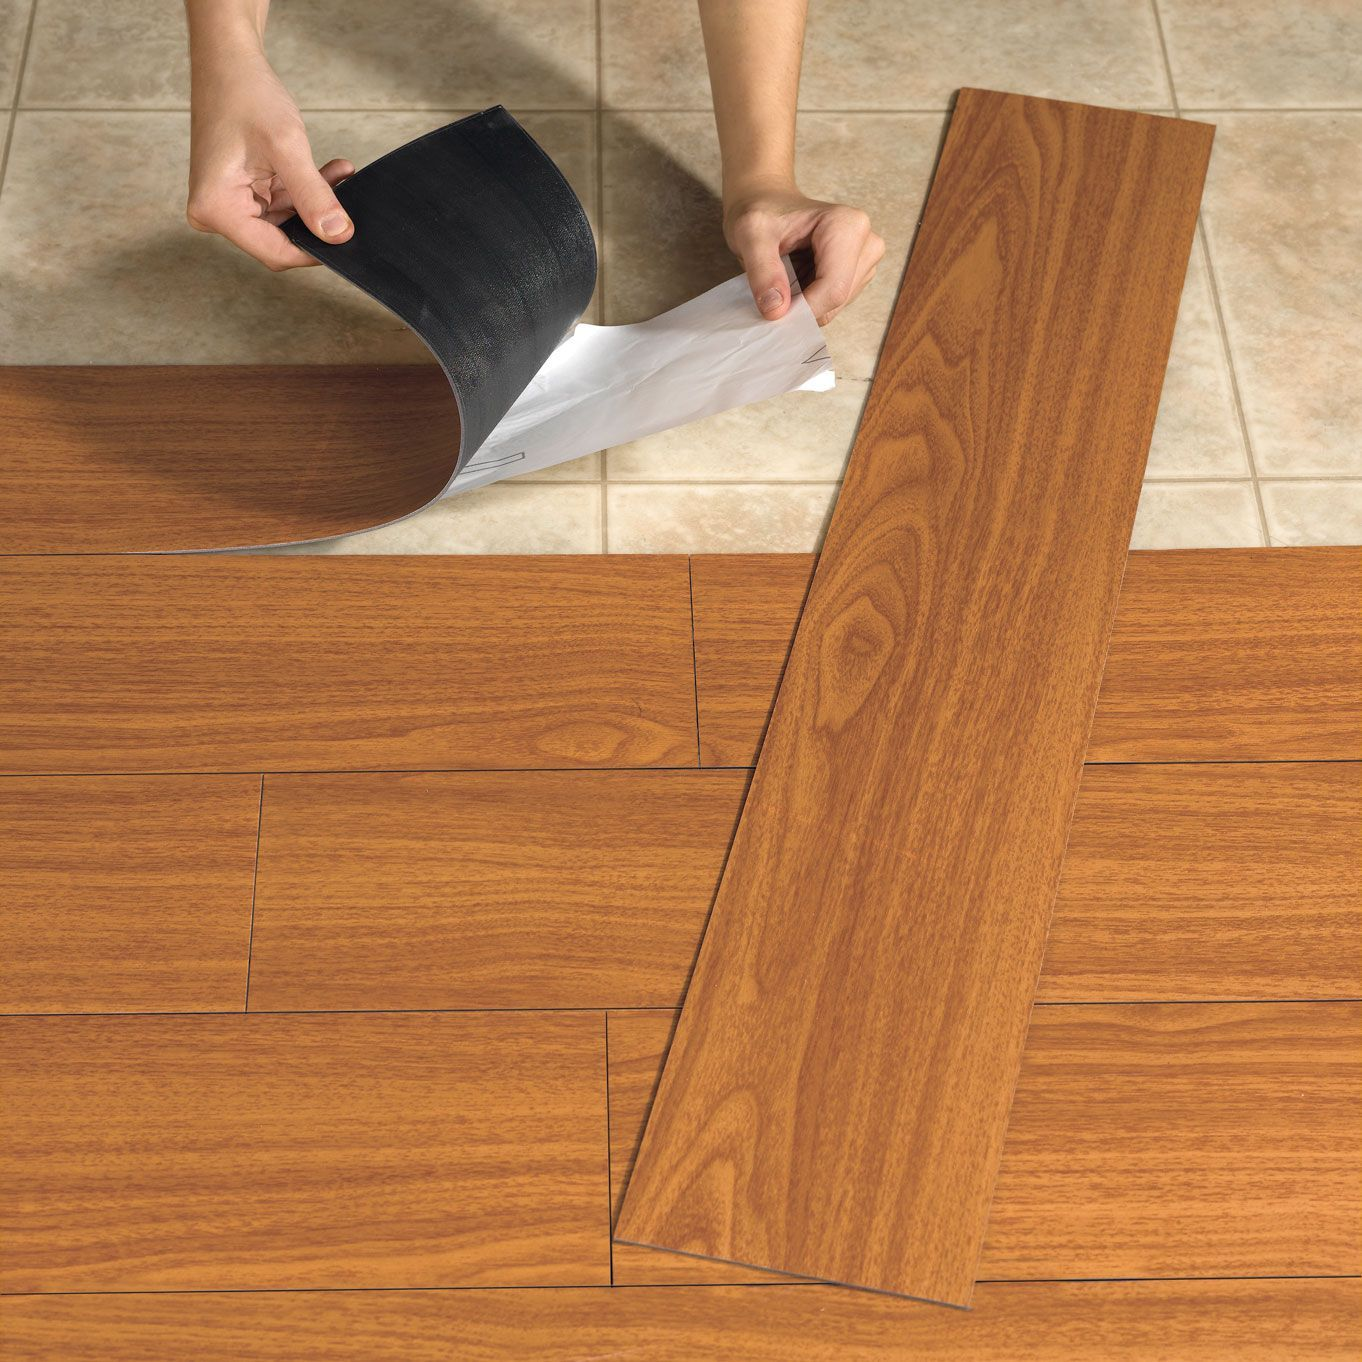 Awesome Vinyl Or Laminate Flooring Part - 5: 37 RV Hacks That Will Make You A Happy Camper